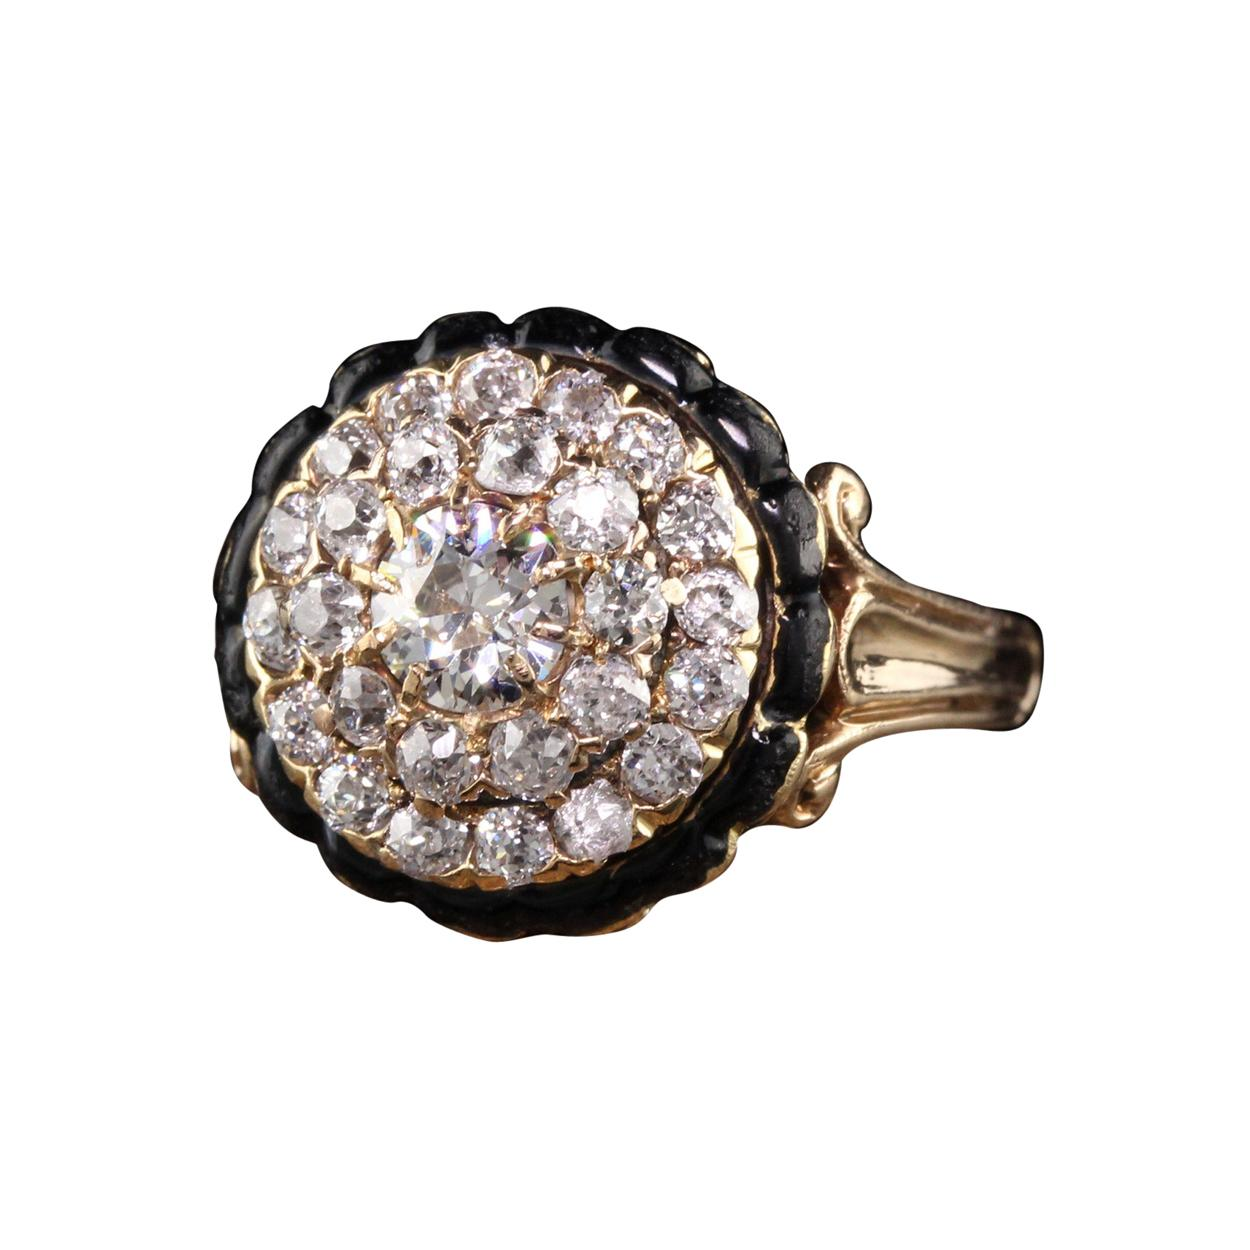 Antique Victorian 14K Yellow Gold Old Mine Diamond and Enamel Engagement Ring